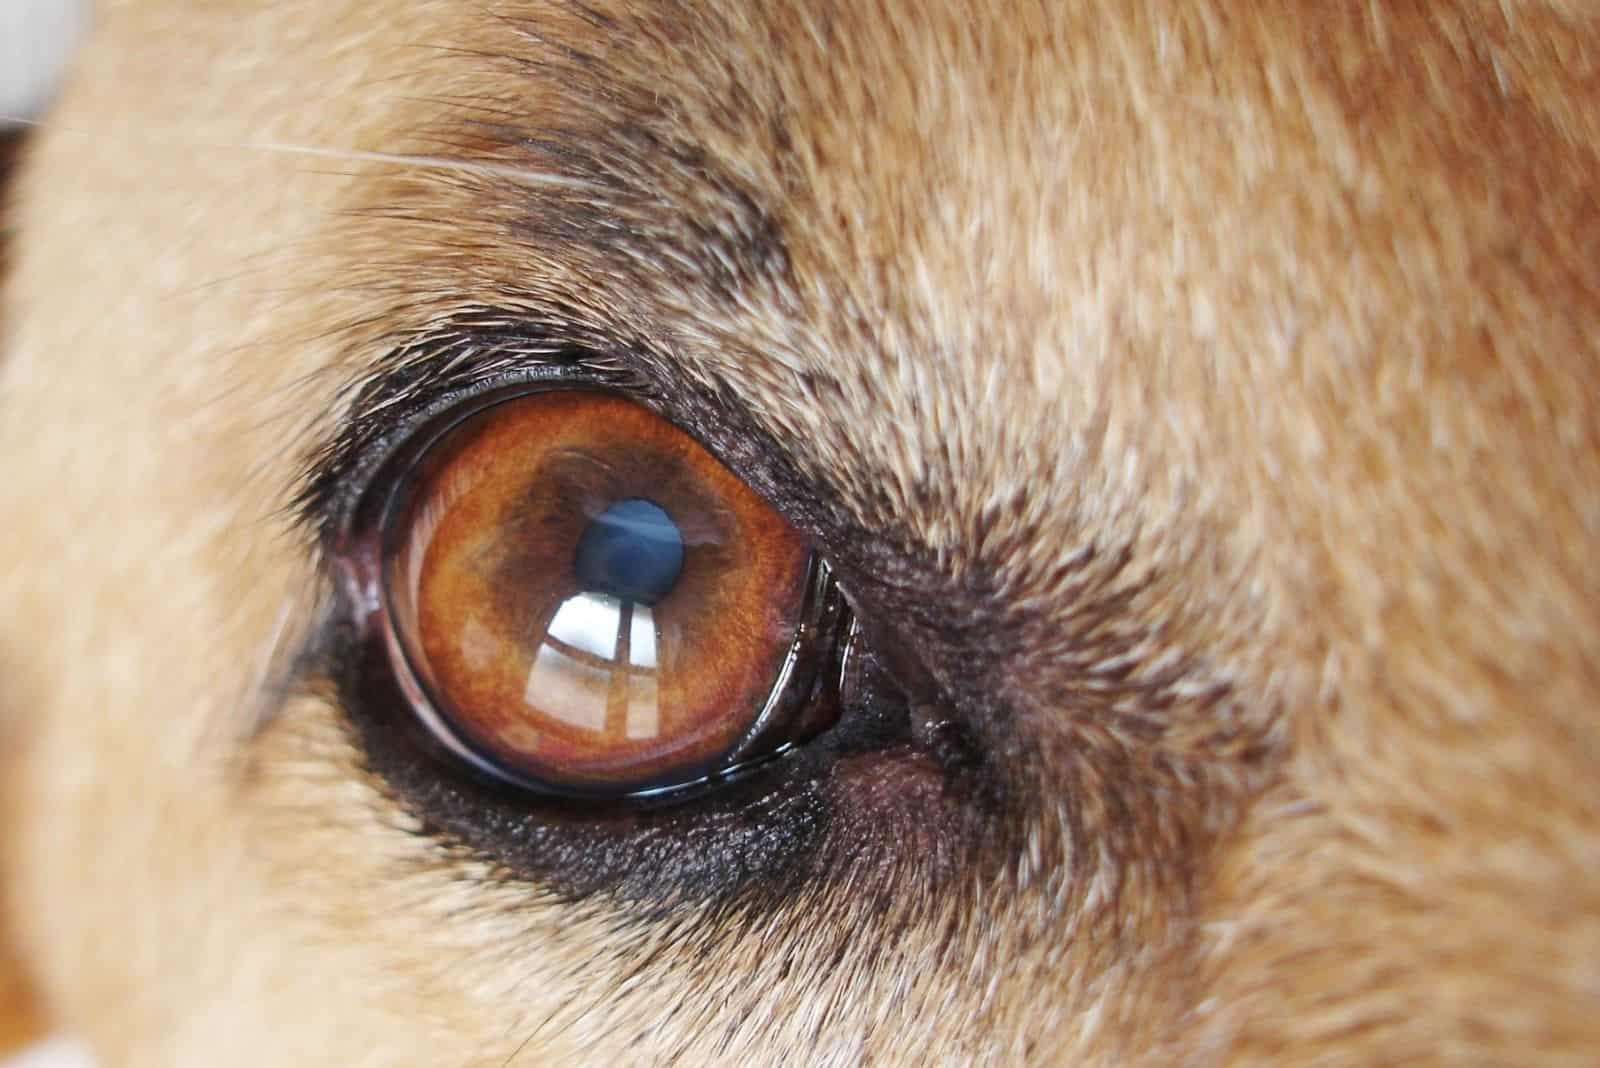 dogs eye with cataract on the lens of his eye in macro